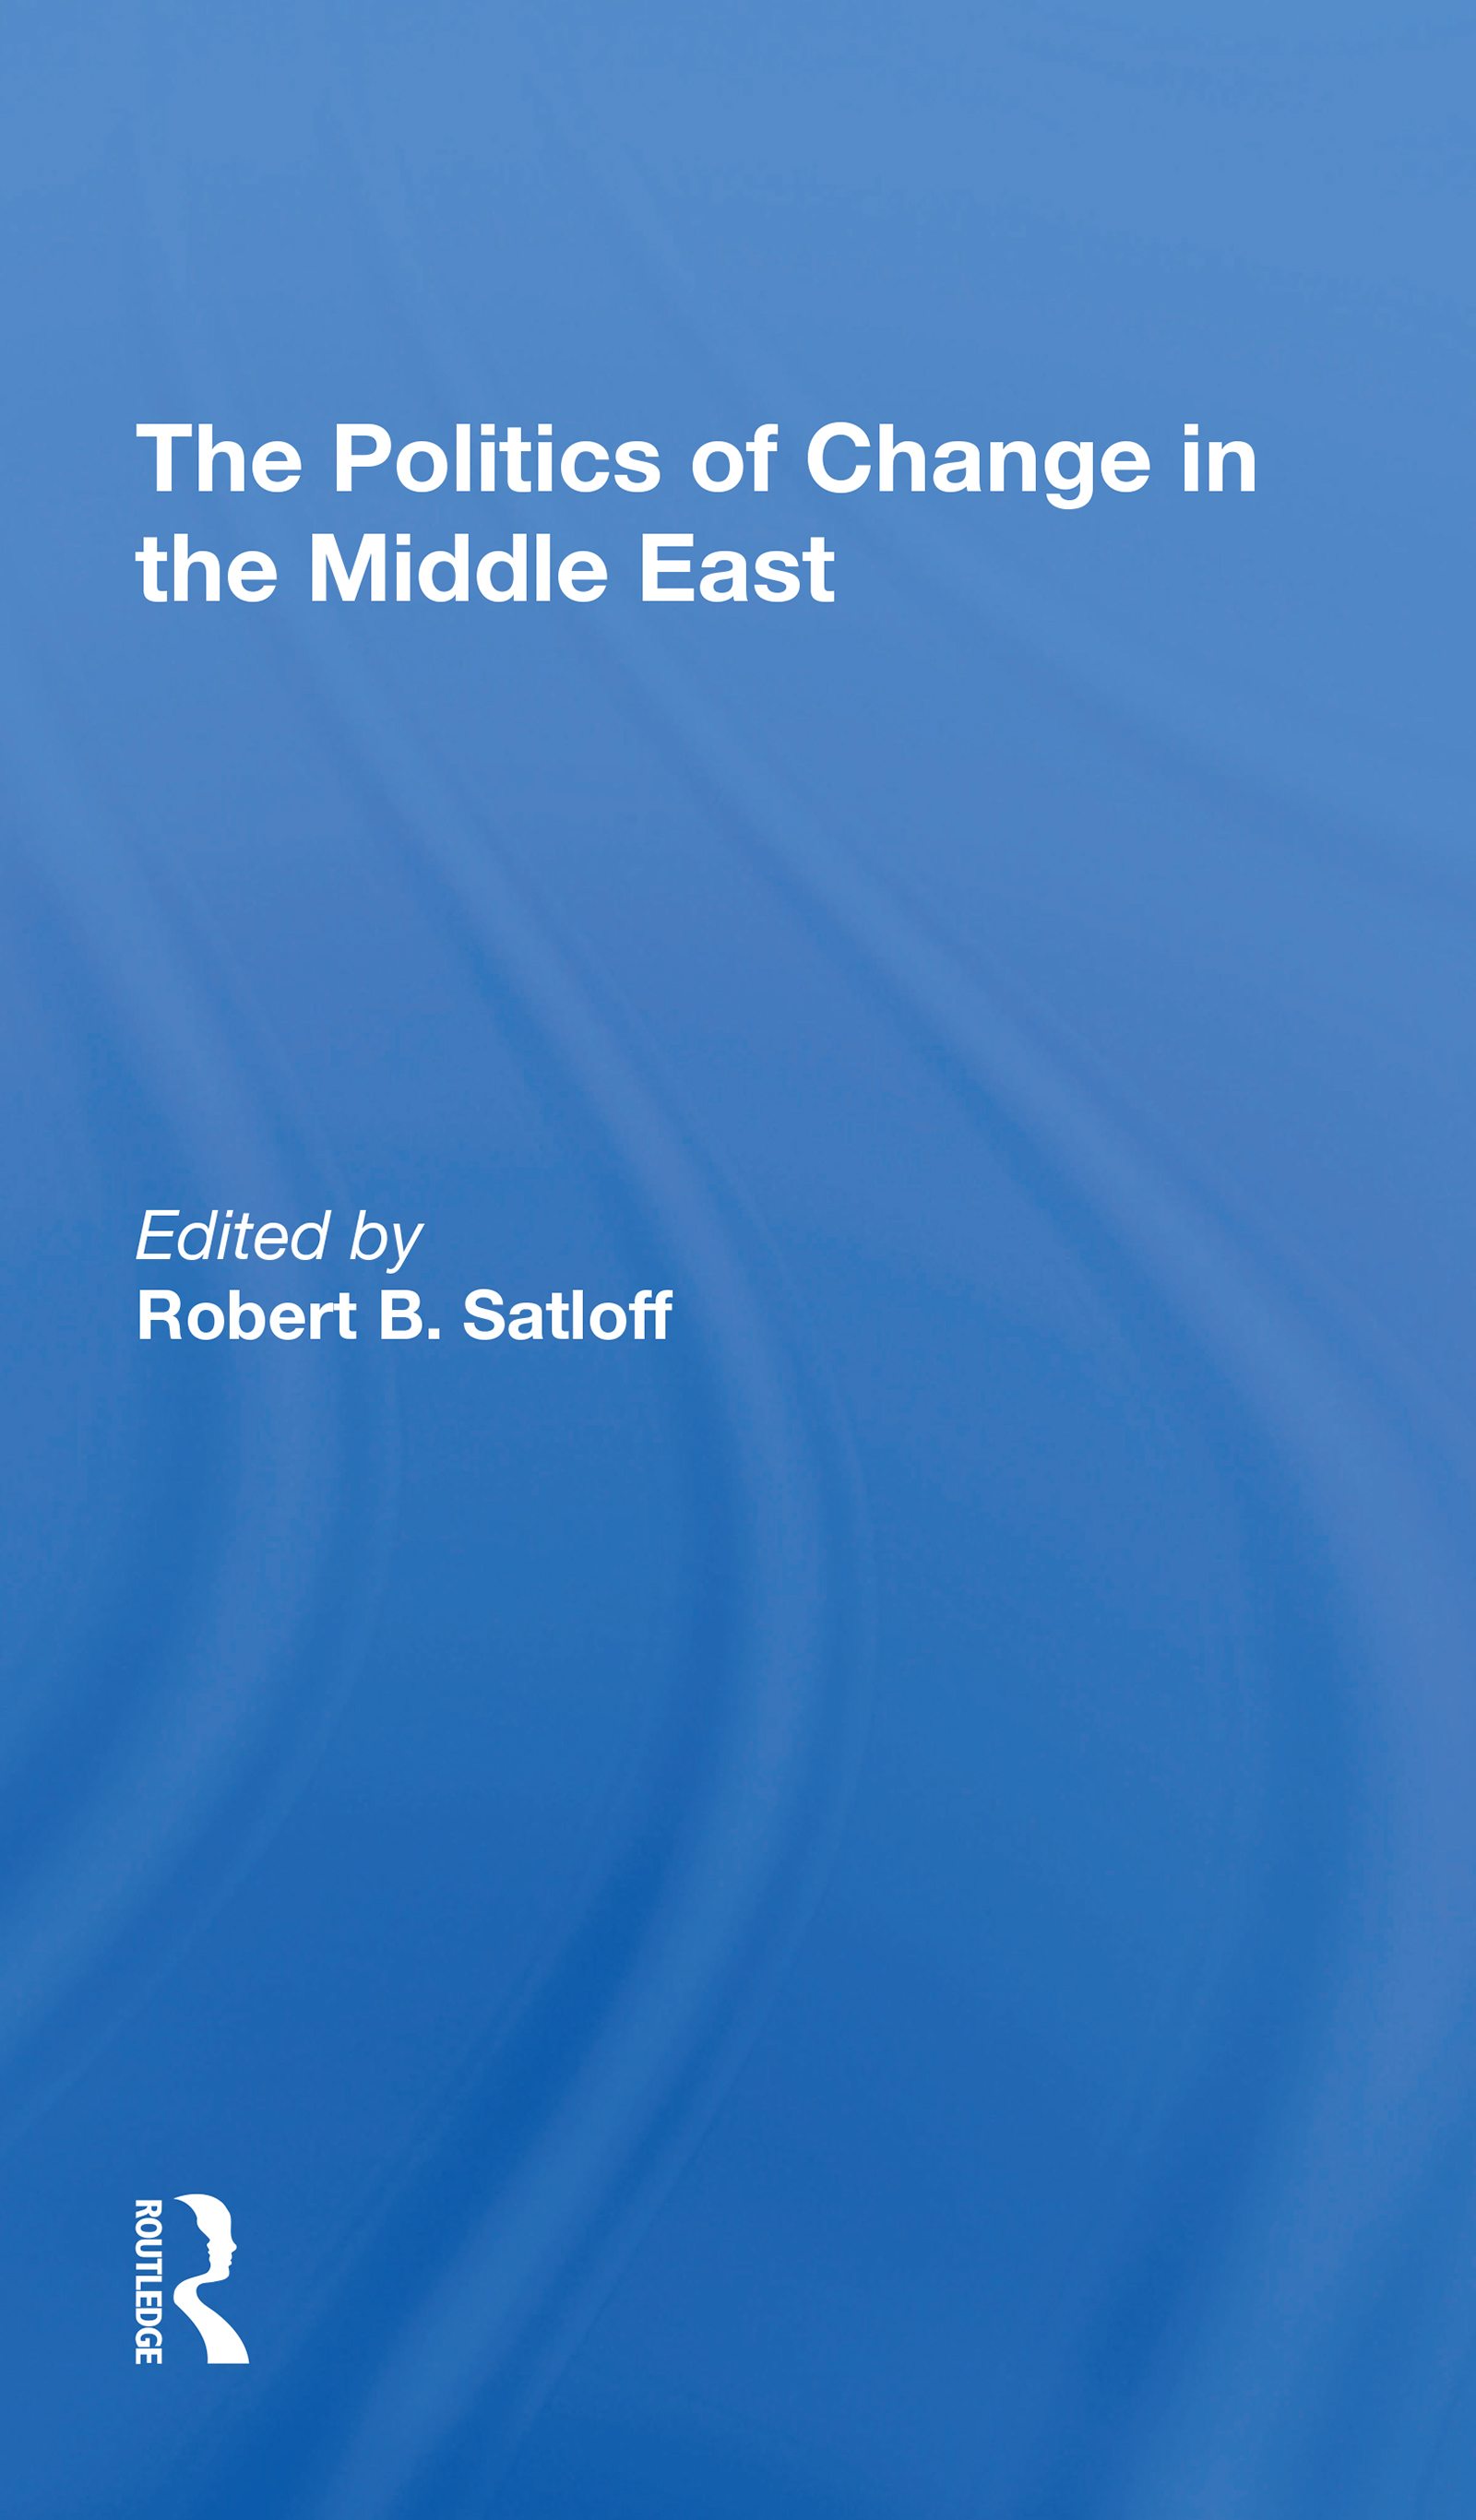 The Politics of Change in the Middle East